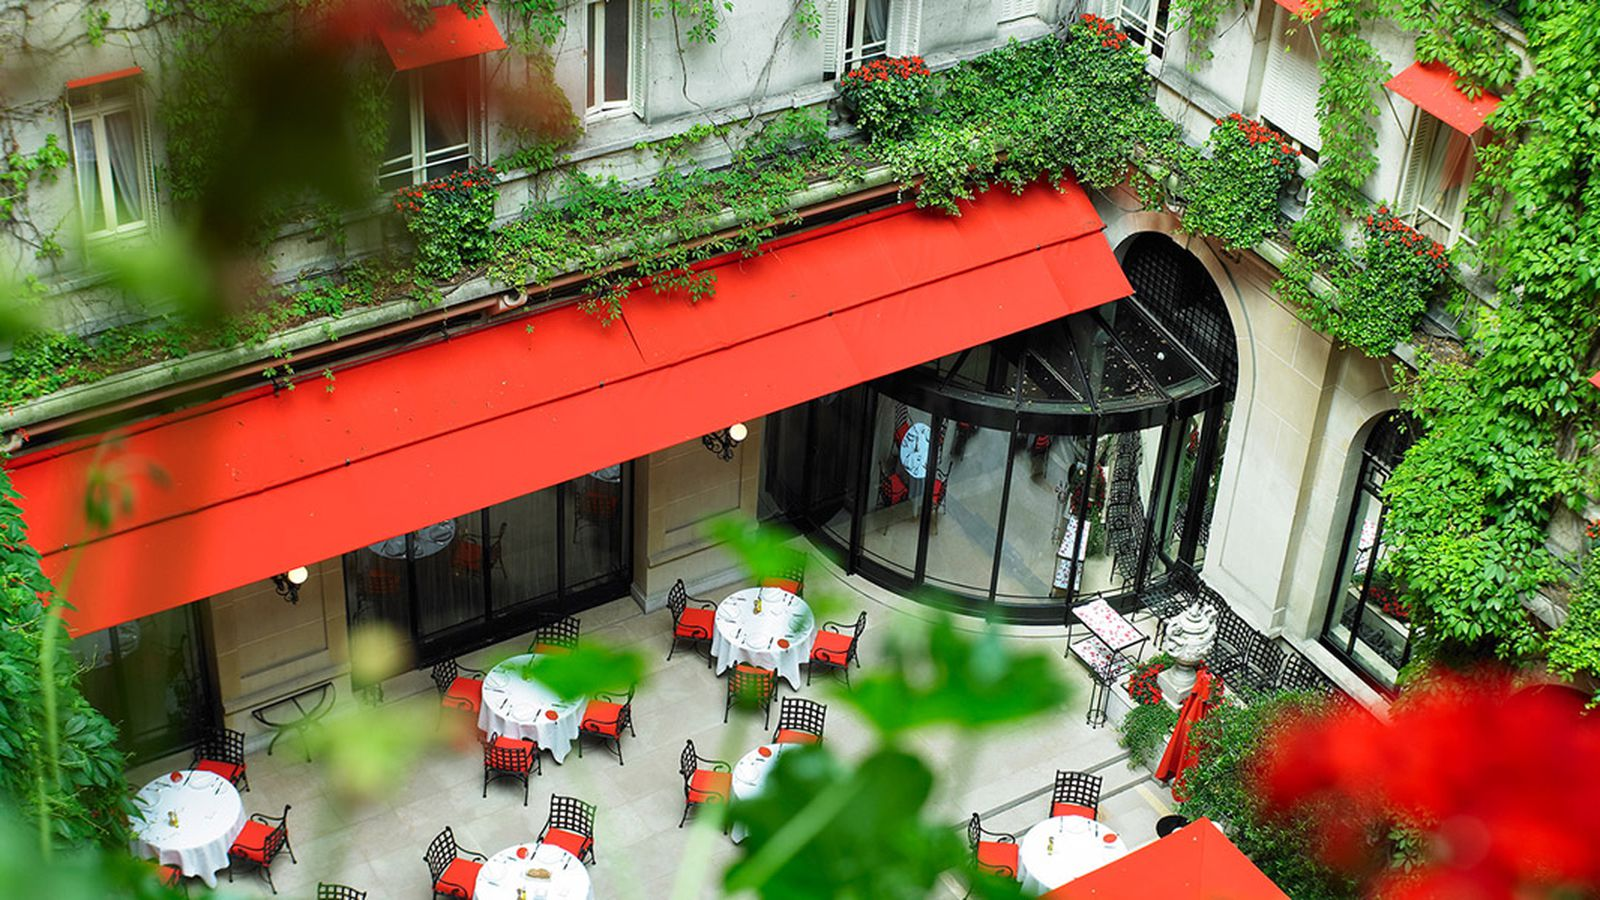 Michelin france alain ducasse 39 s plaza ath n e demoted pavillon ledoyen gets three eater - La cour jardin plaza athenee ...